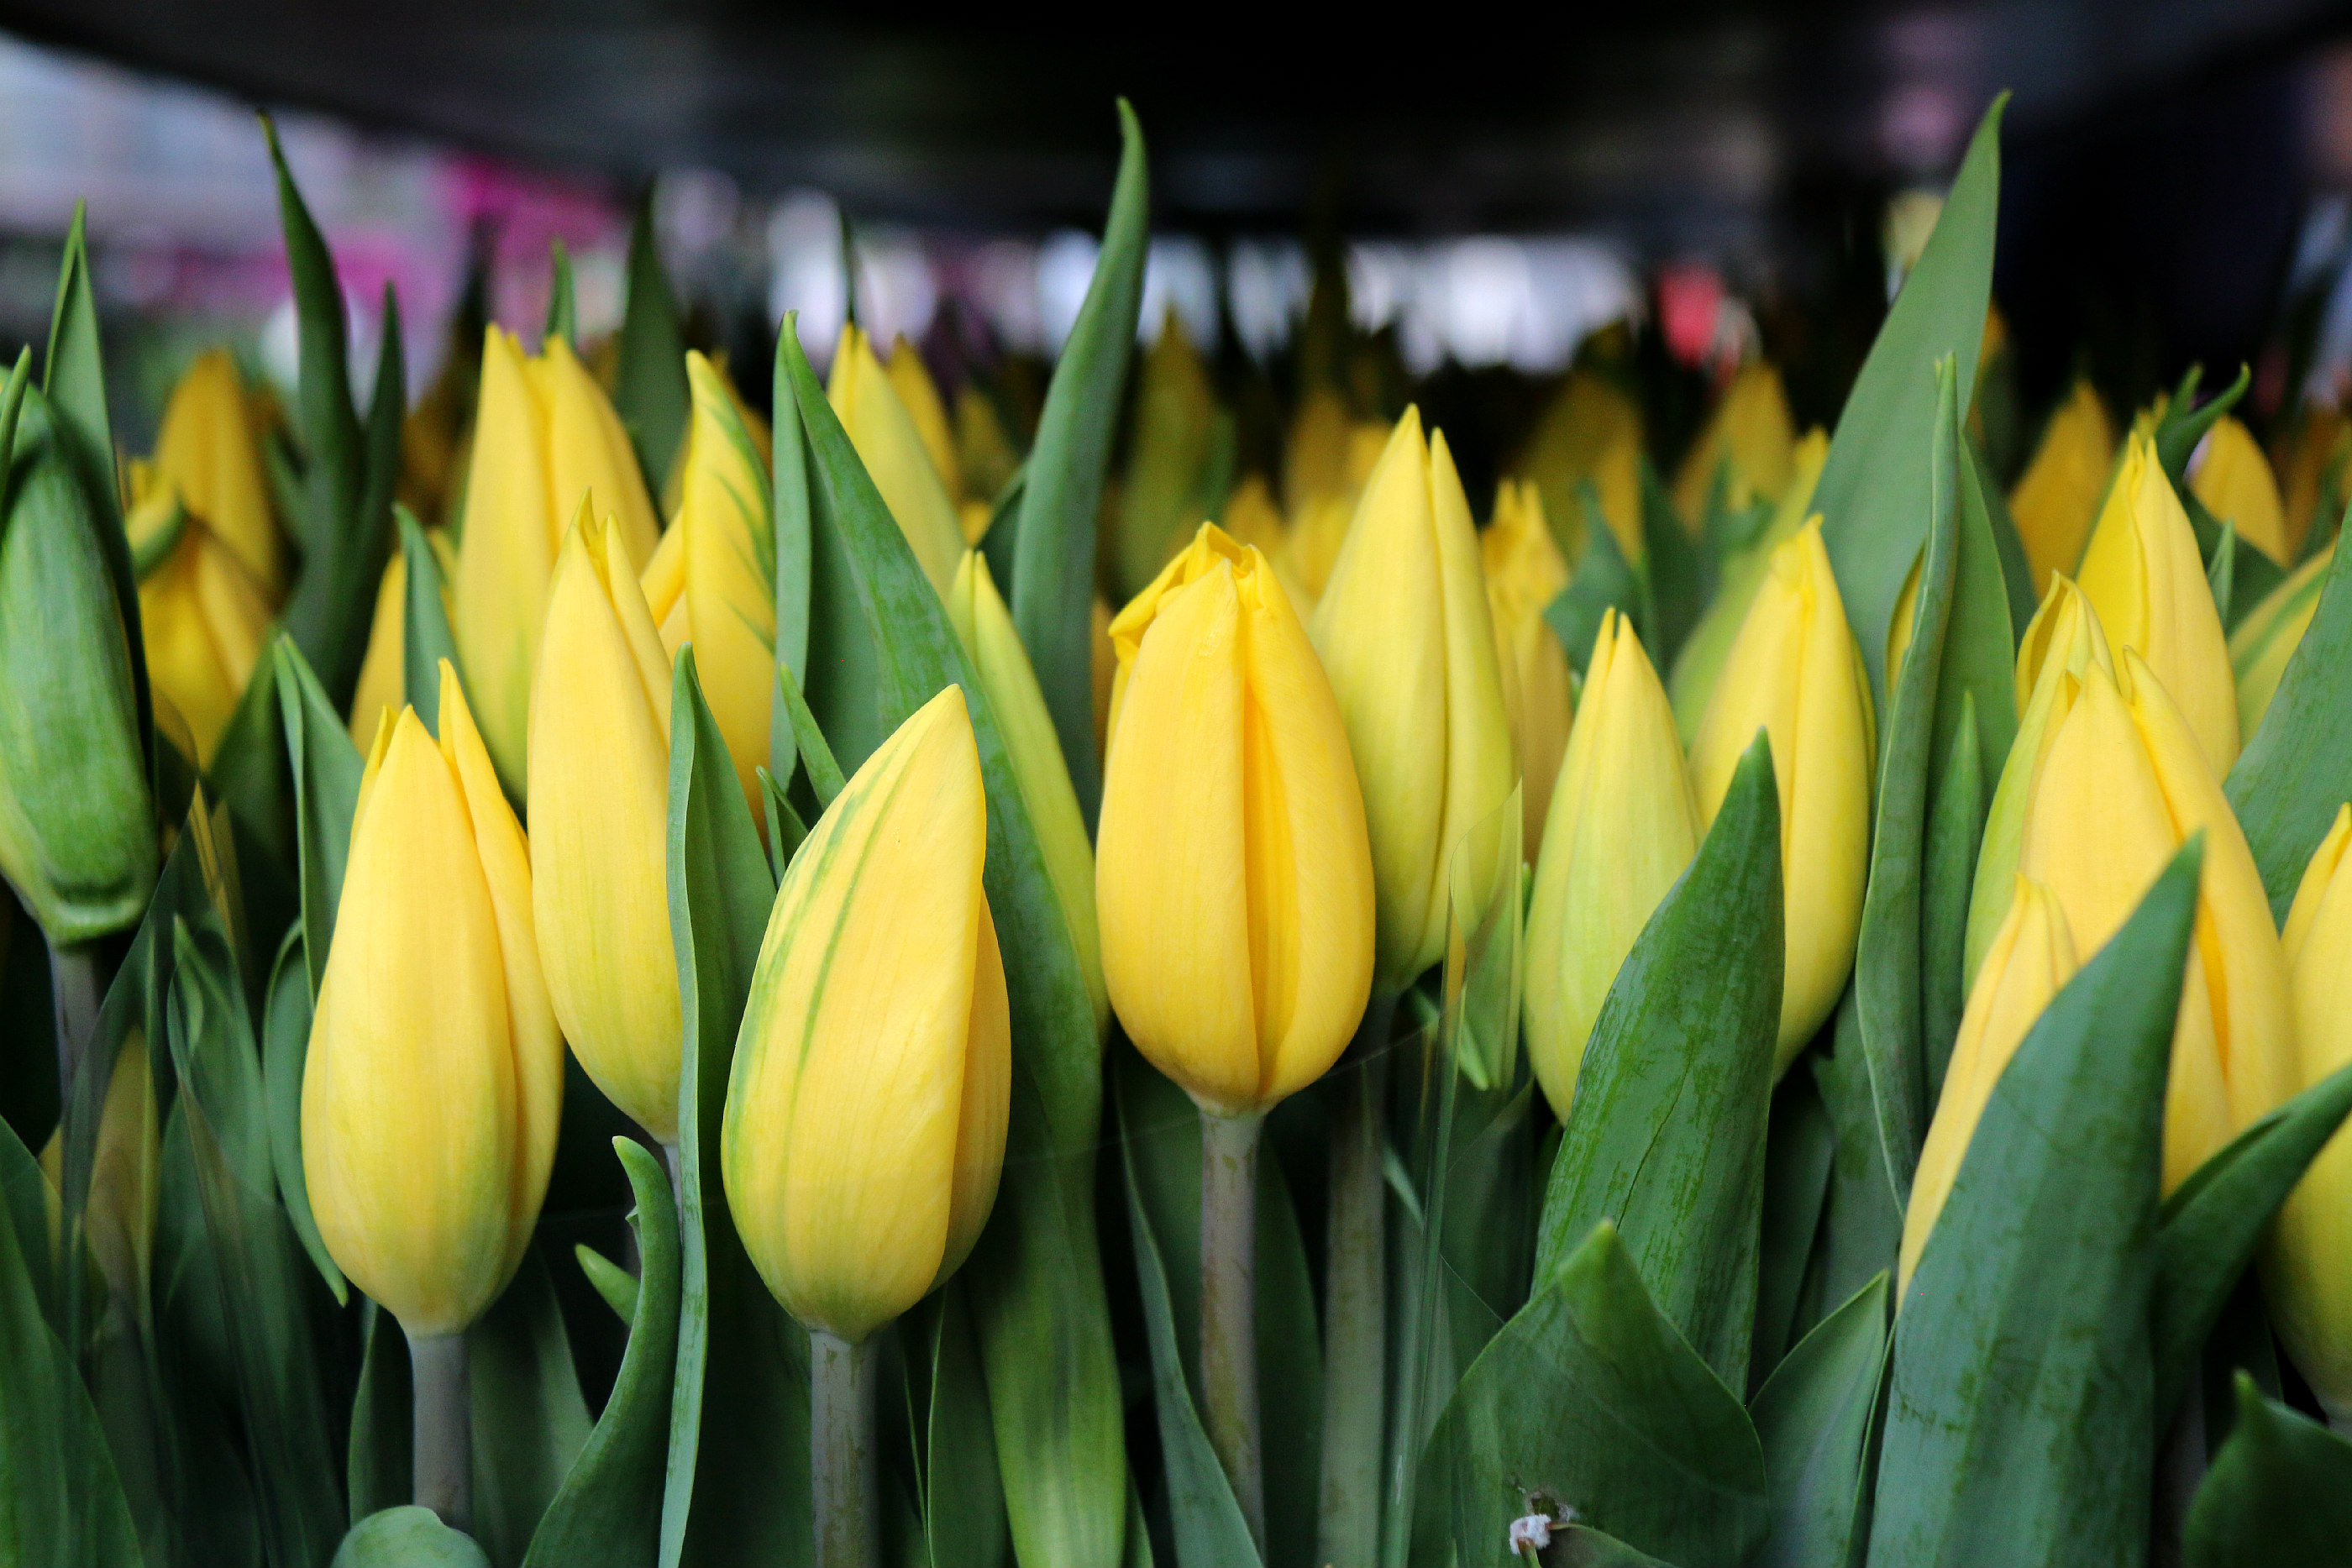 Columbia Road Flower Market London tulips 2